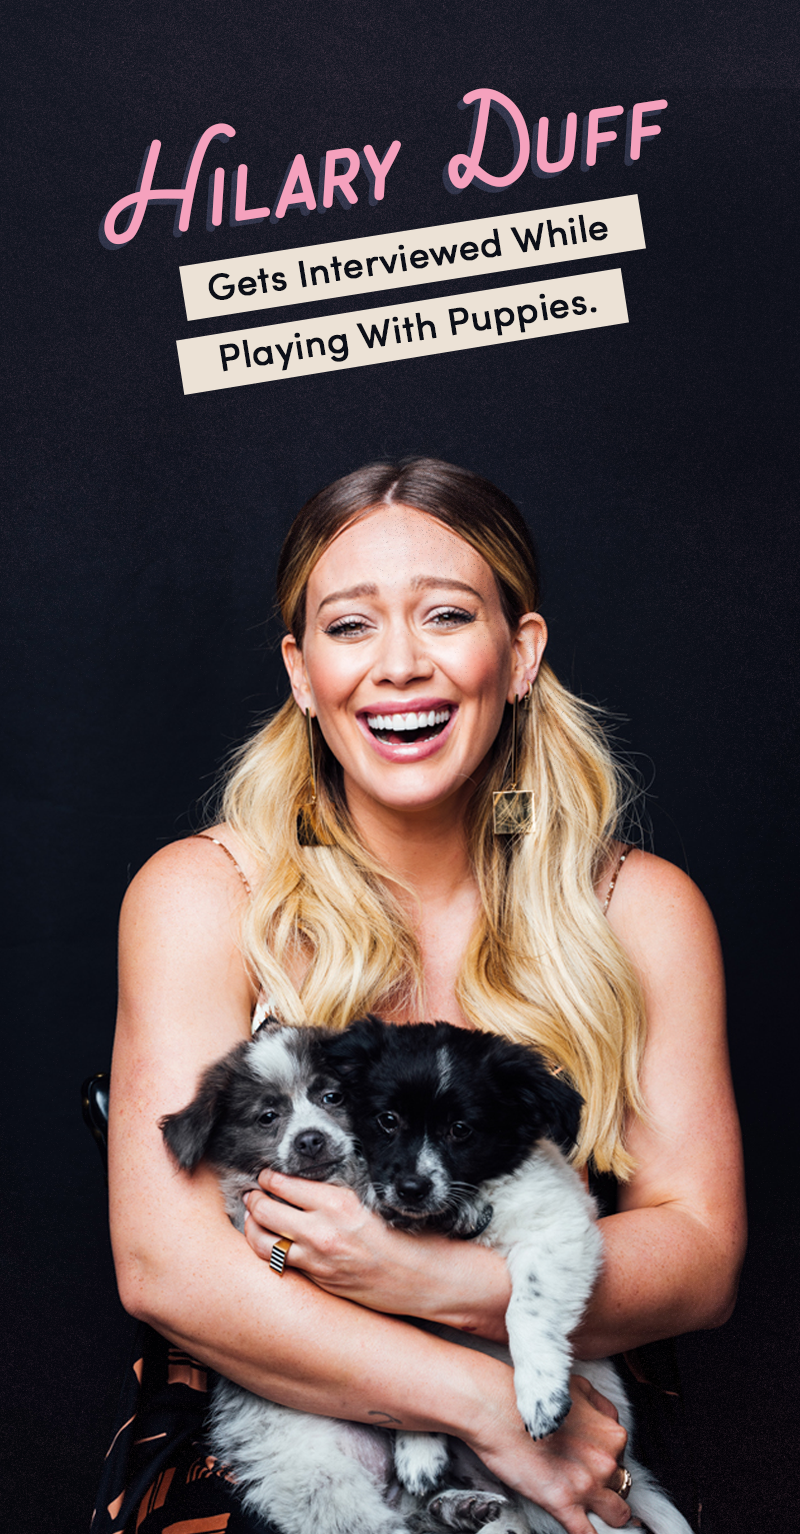 hilary duff puppies final.png